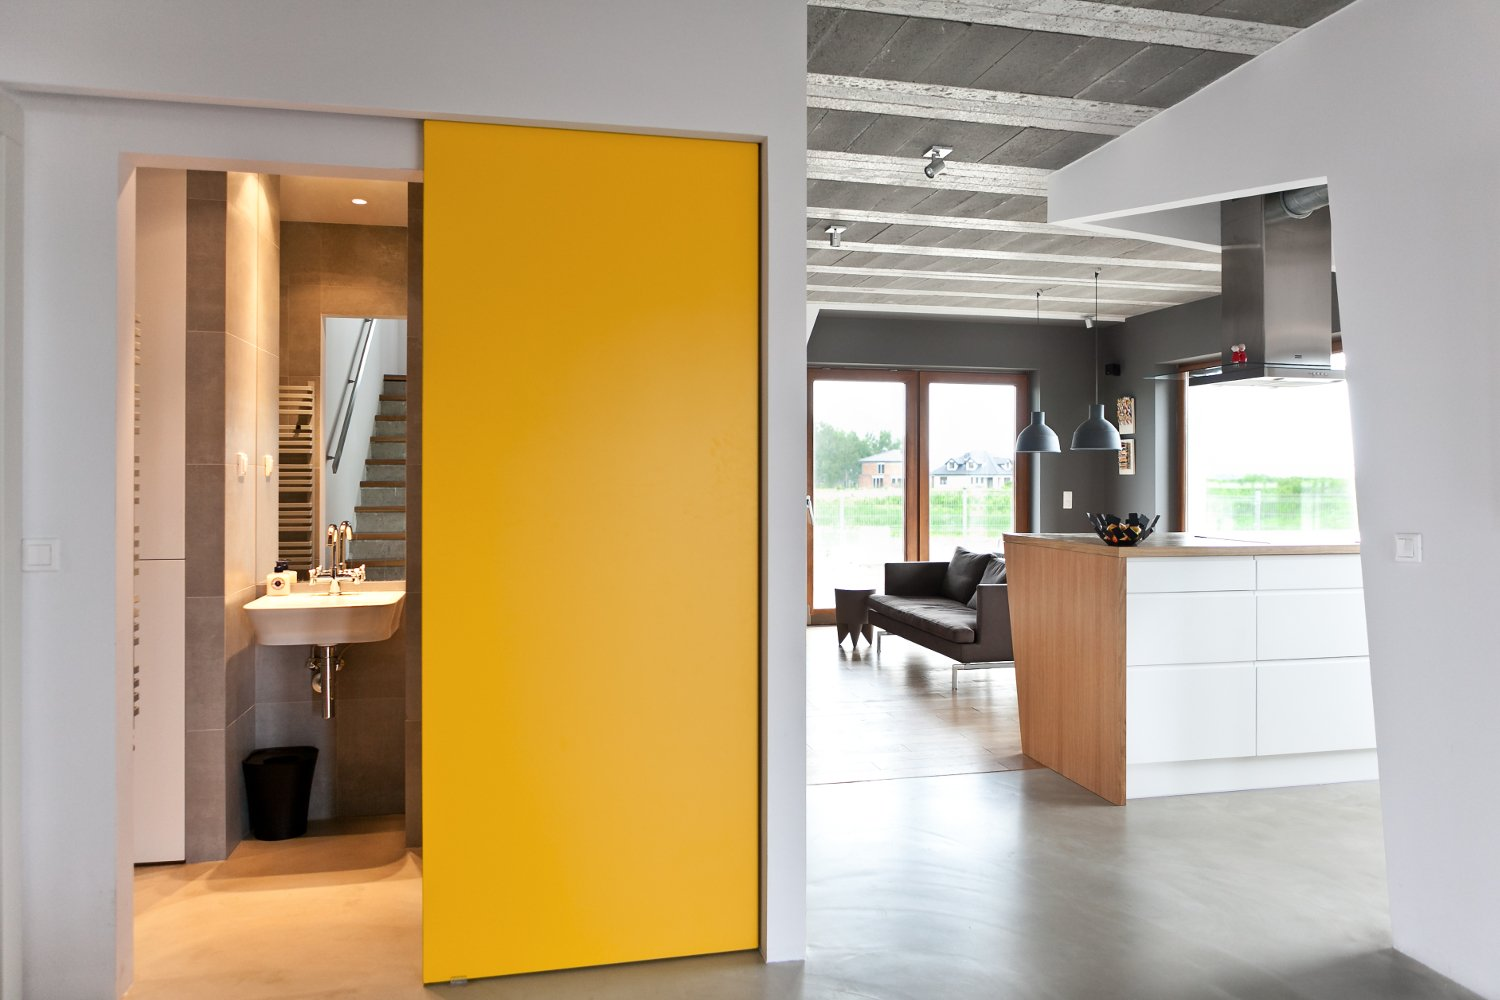 Canary yellow doors keep the house from feeling austere. The sliding function also saves space. Tagged: Kitchen, White Cabinet, and Wood Counter.  Photo 25 of 25 in 25 Bold Ways to Decorate with Yellow from How to Decorate With Yellow (Without the Smiley-Face Connotations)